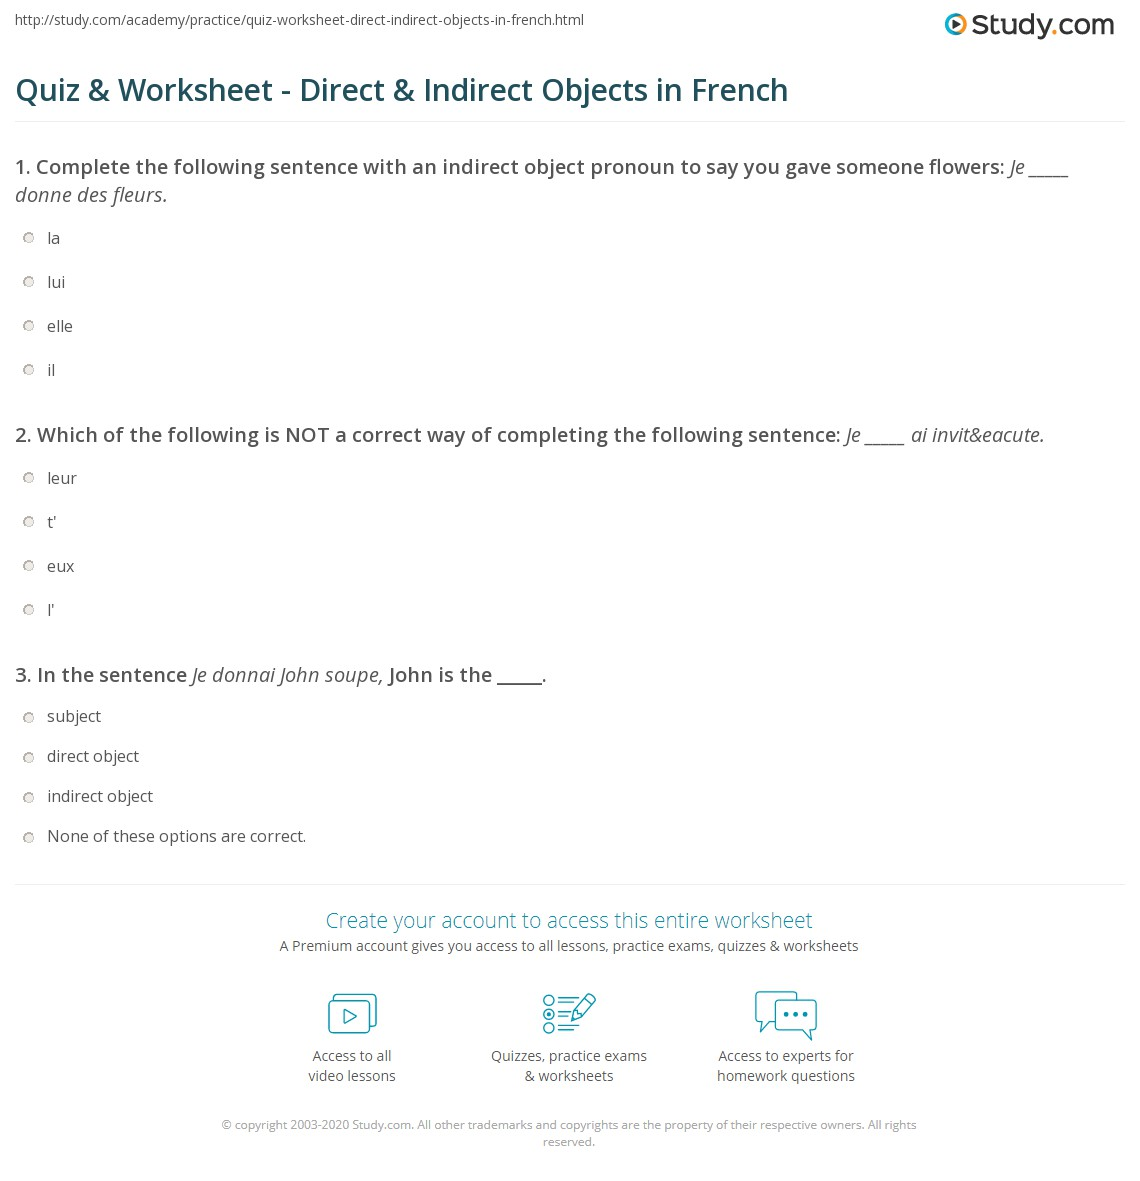 Quiz Worksheet Direct Indirect Objects In French